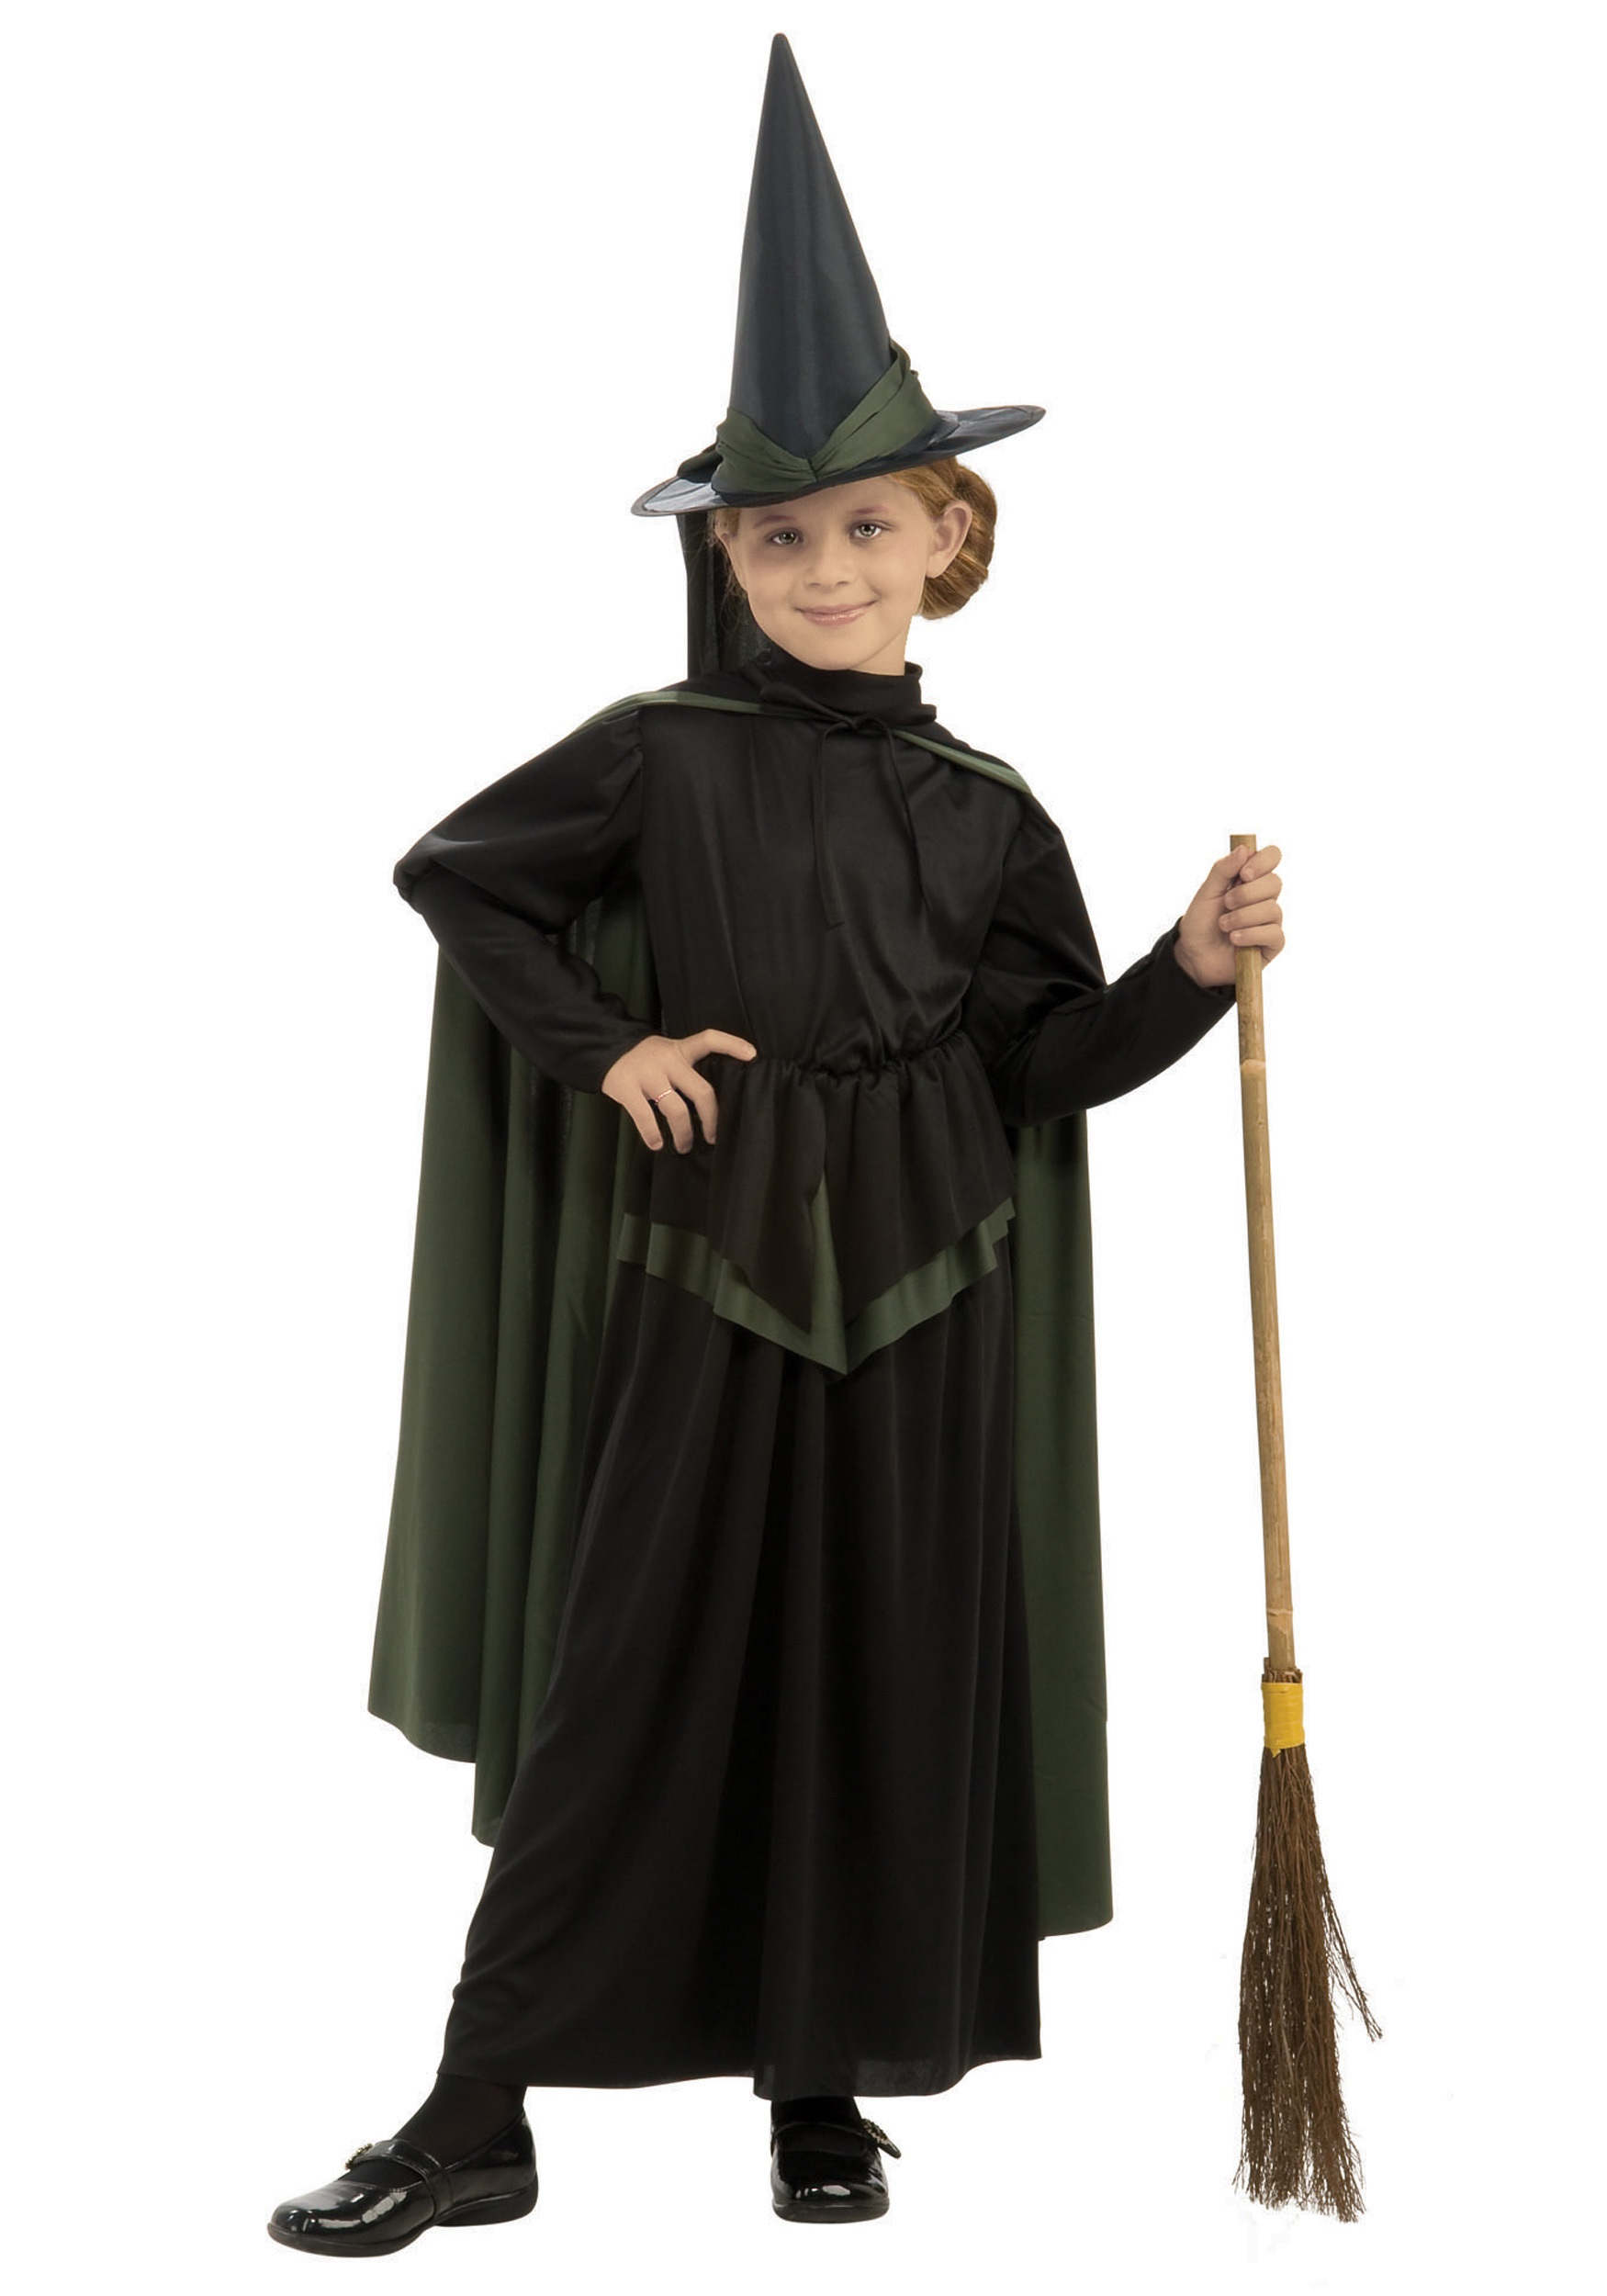 Child Wicked Witch Costume  sc 1 st  Halloween Costumes & Child Wicked Witch Costume - Halloween Costumes